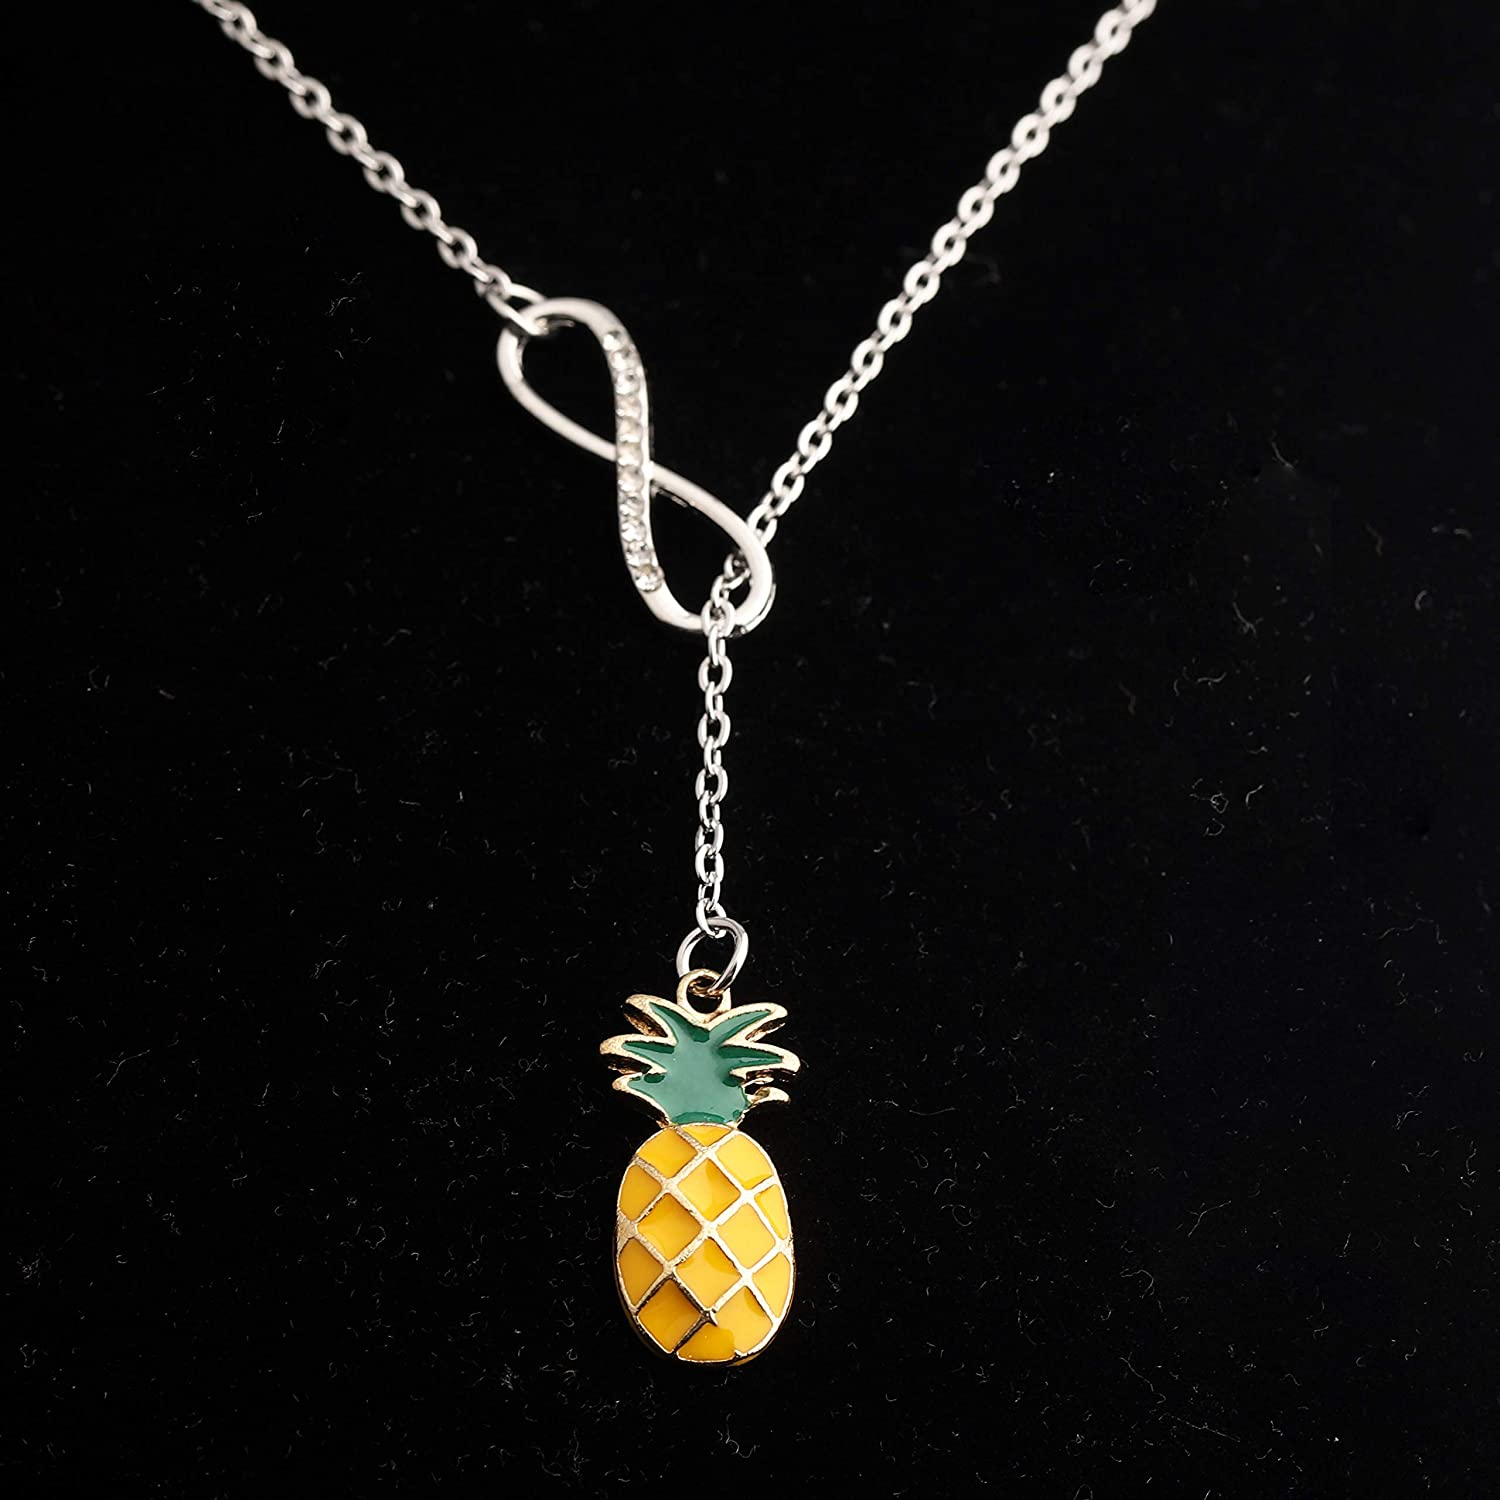 Pineapple Jewelry Pineapple Choker Pineapple Charm Necklace Pineapple Lover Gift Fruit Necklace Foodie Gift Copper Pineapple Necklace